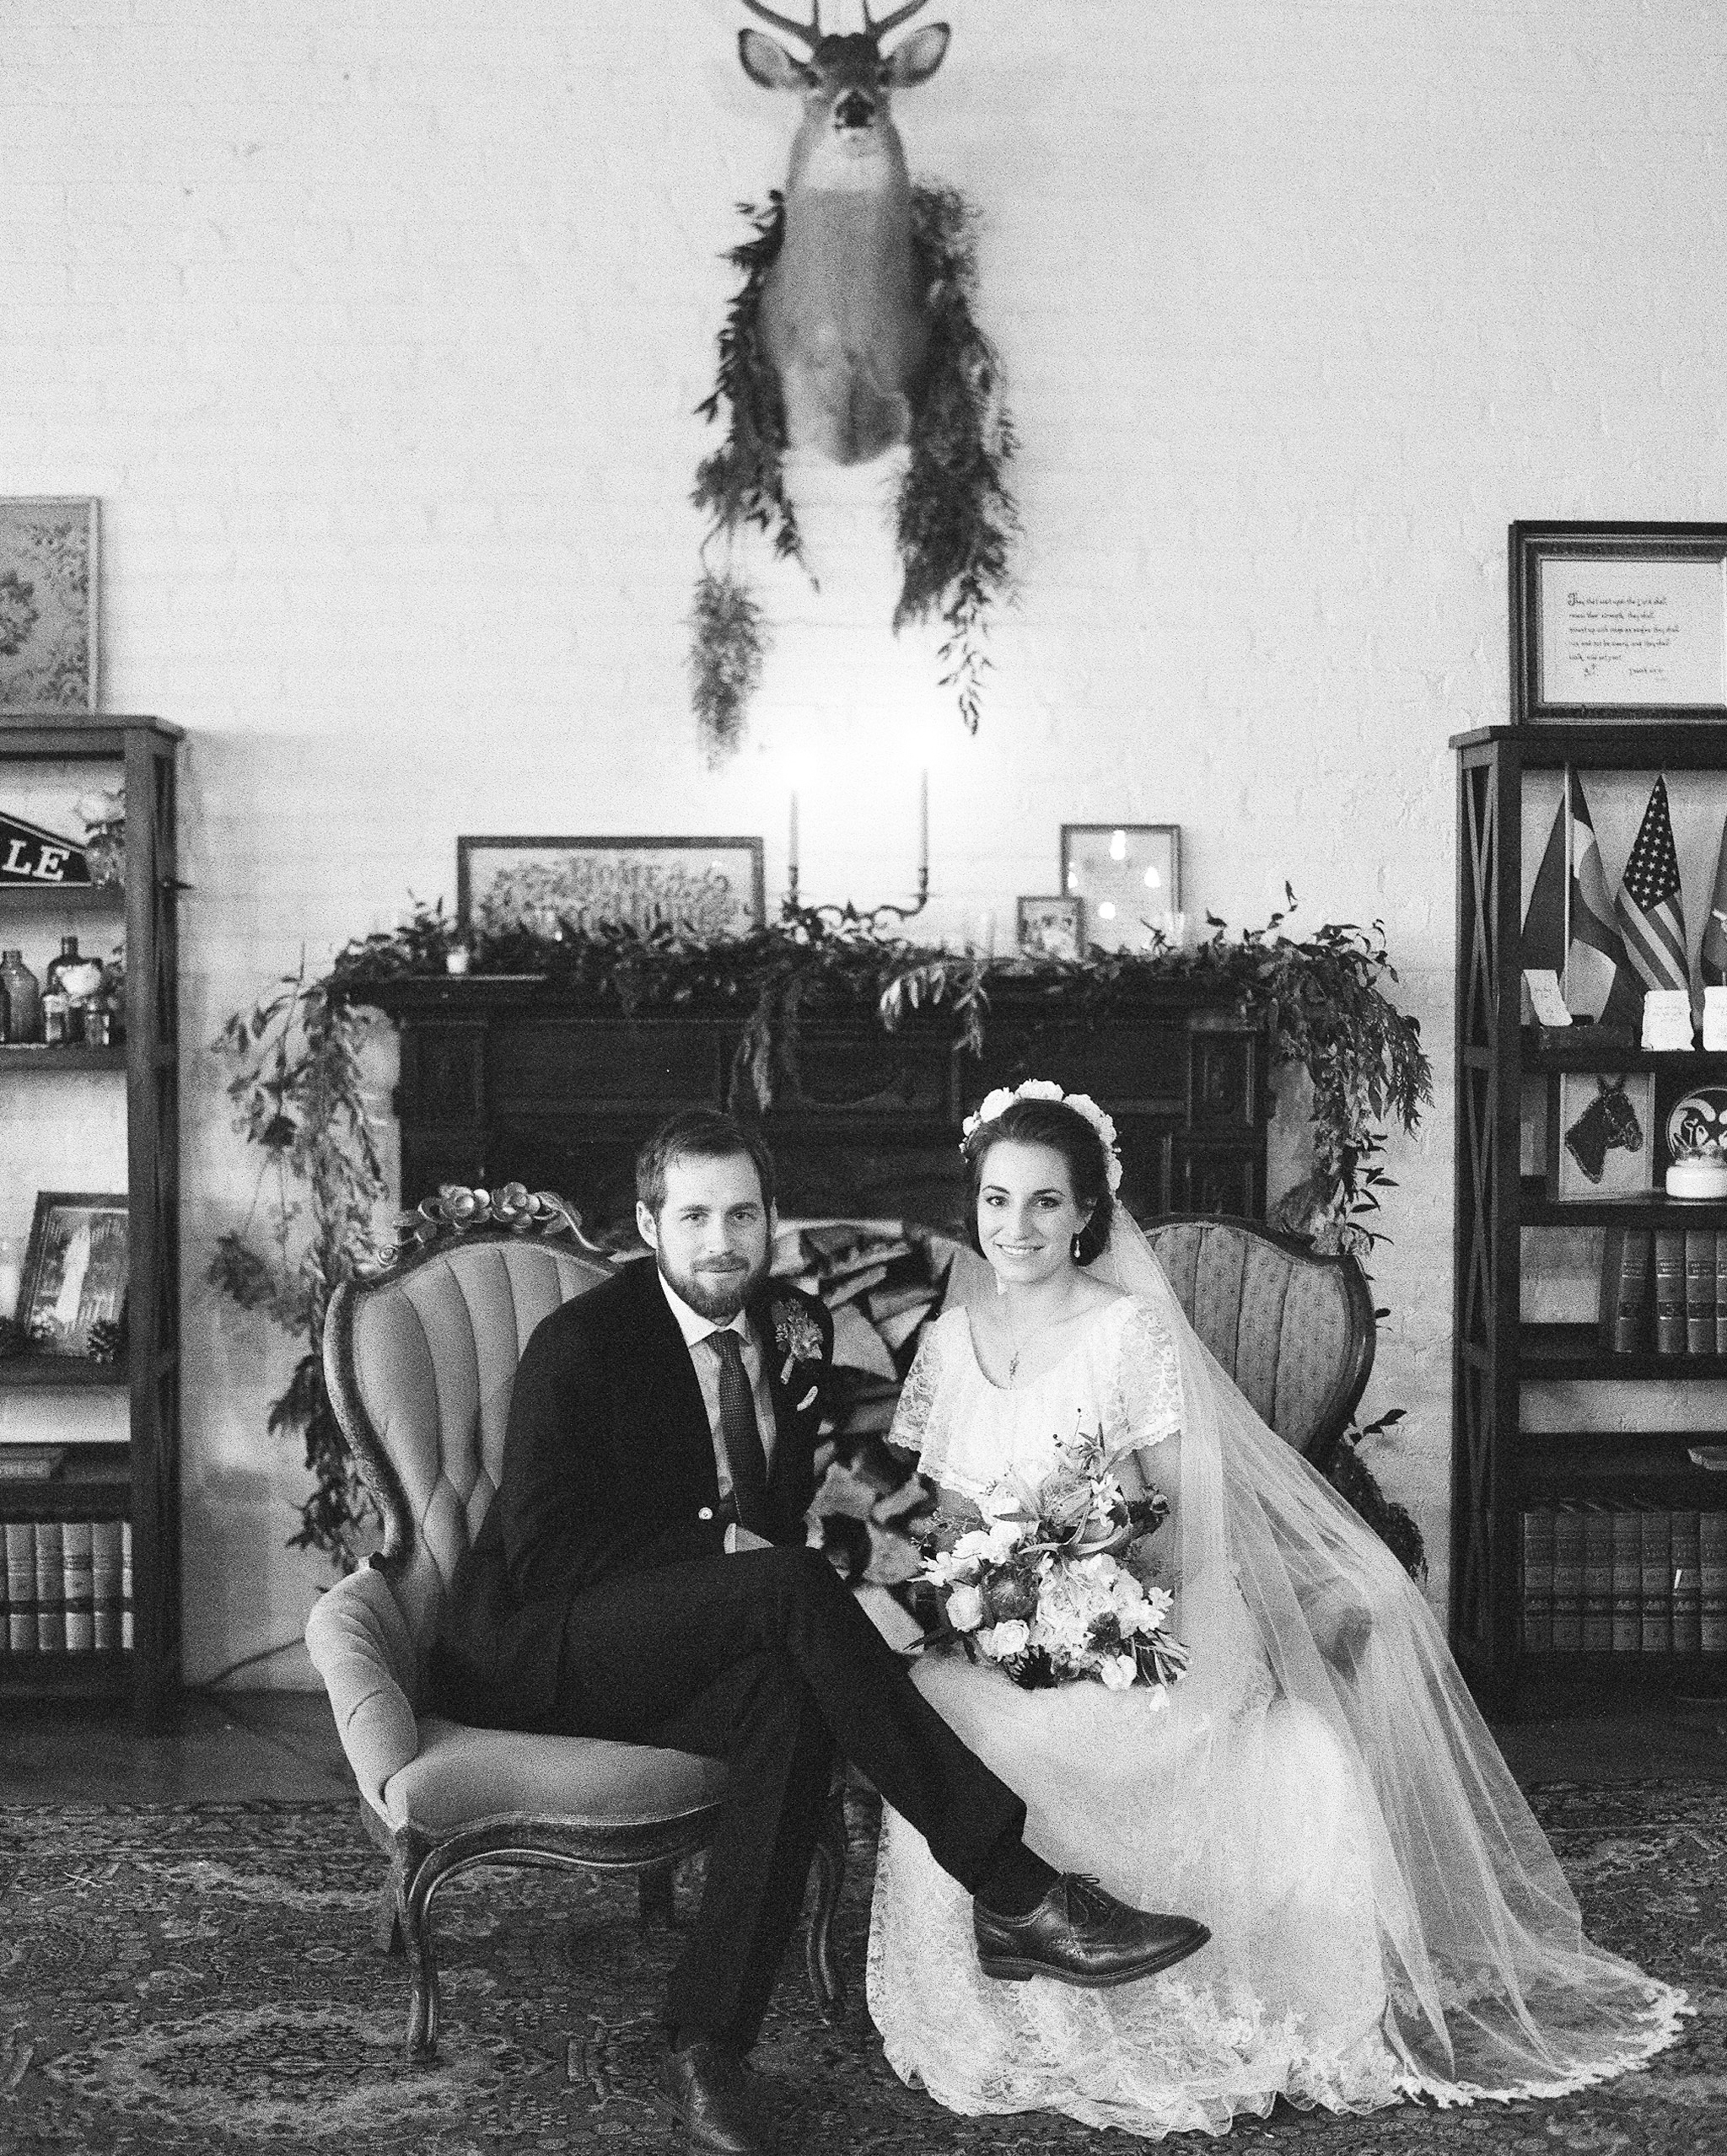 sidney-dane-wedding-couple-132-s112109-0815.jpg